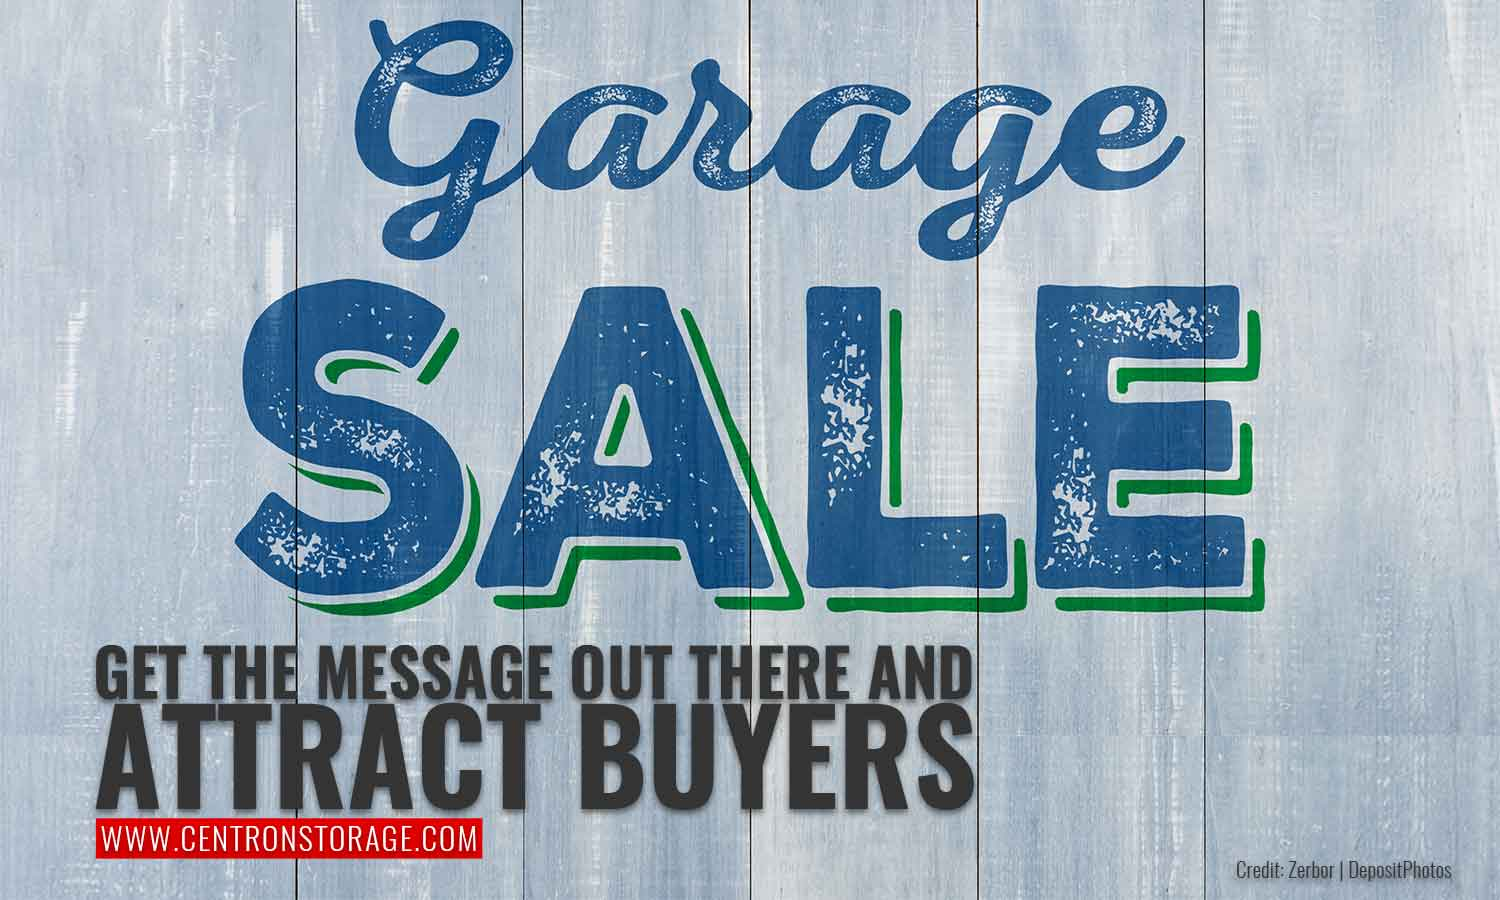 Get the message out there and attract buyers